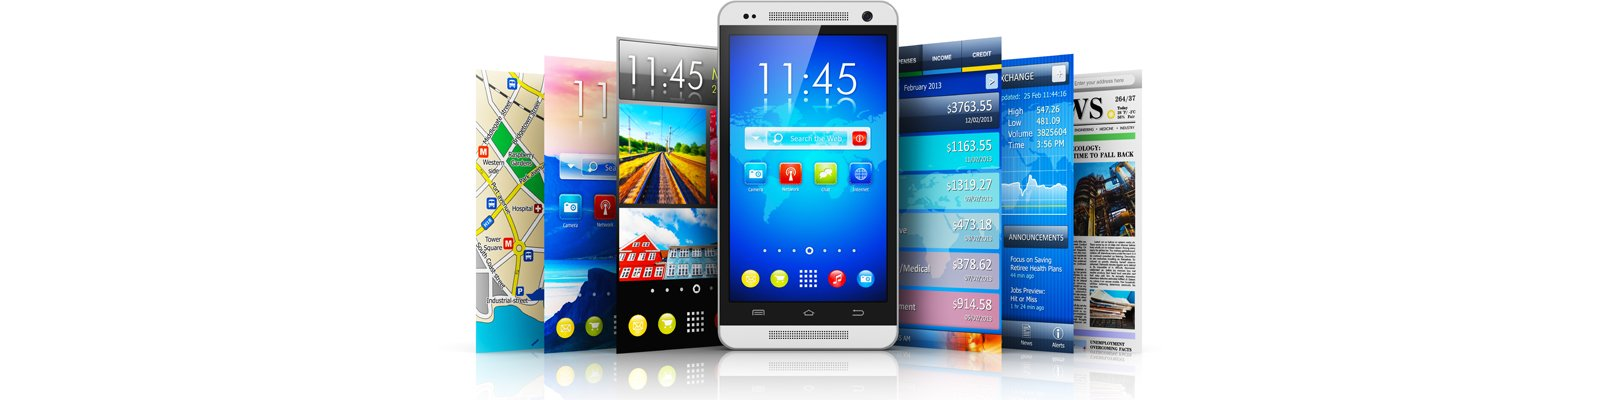 Variety-of-mobile-applications-000029264662_XXXLarge